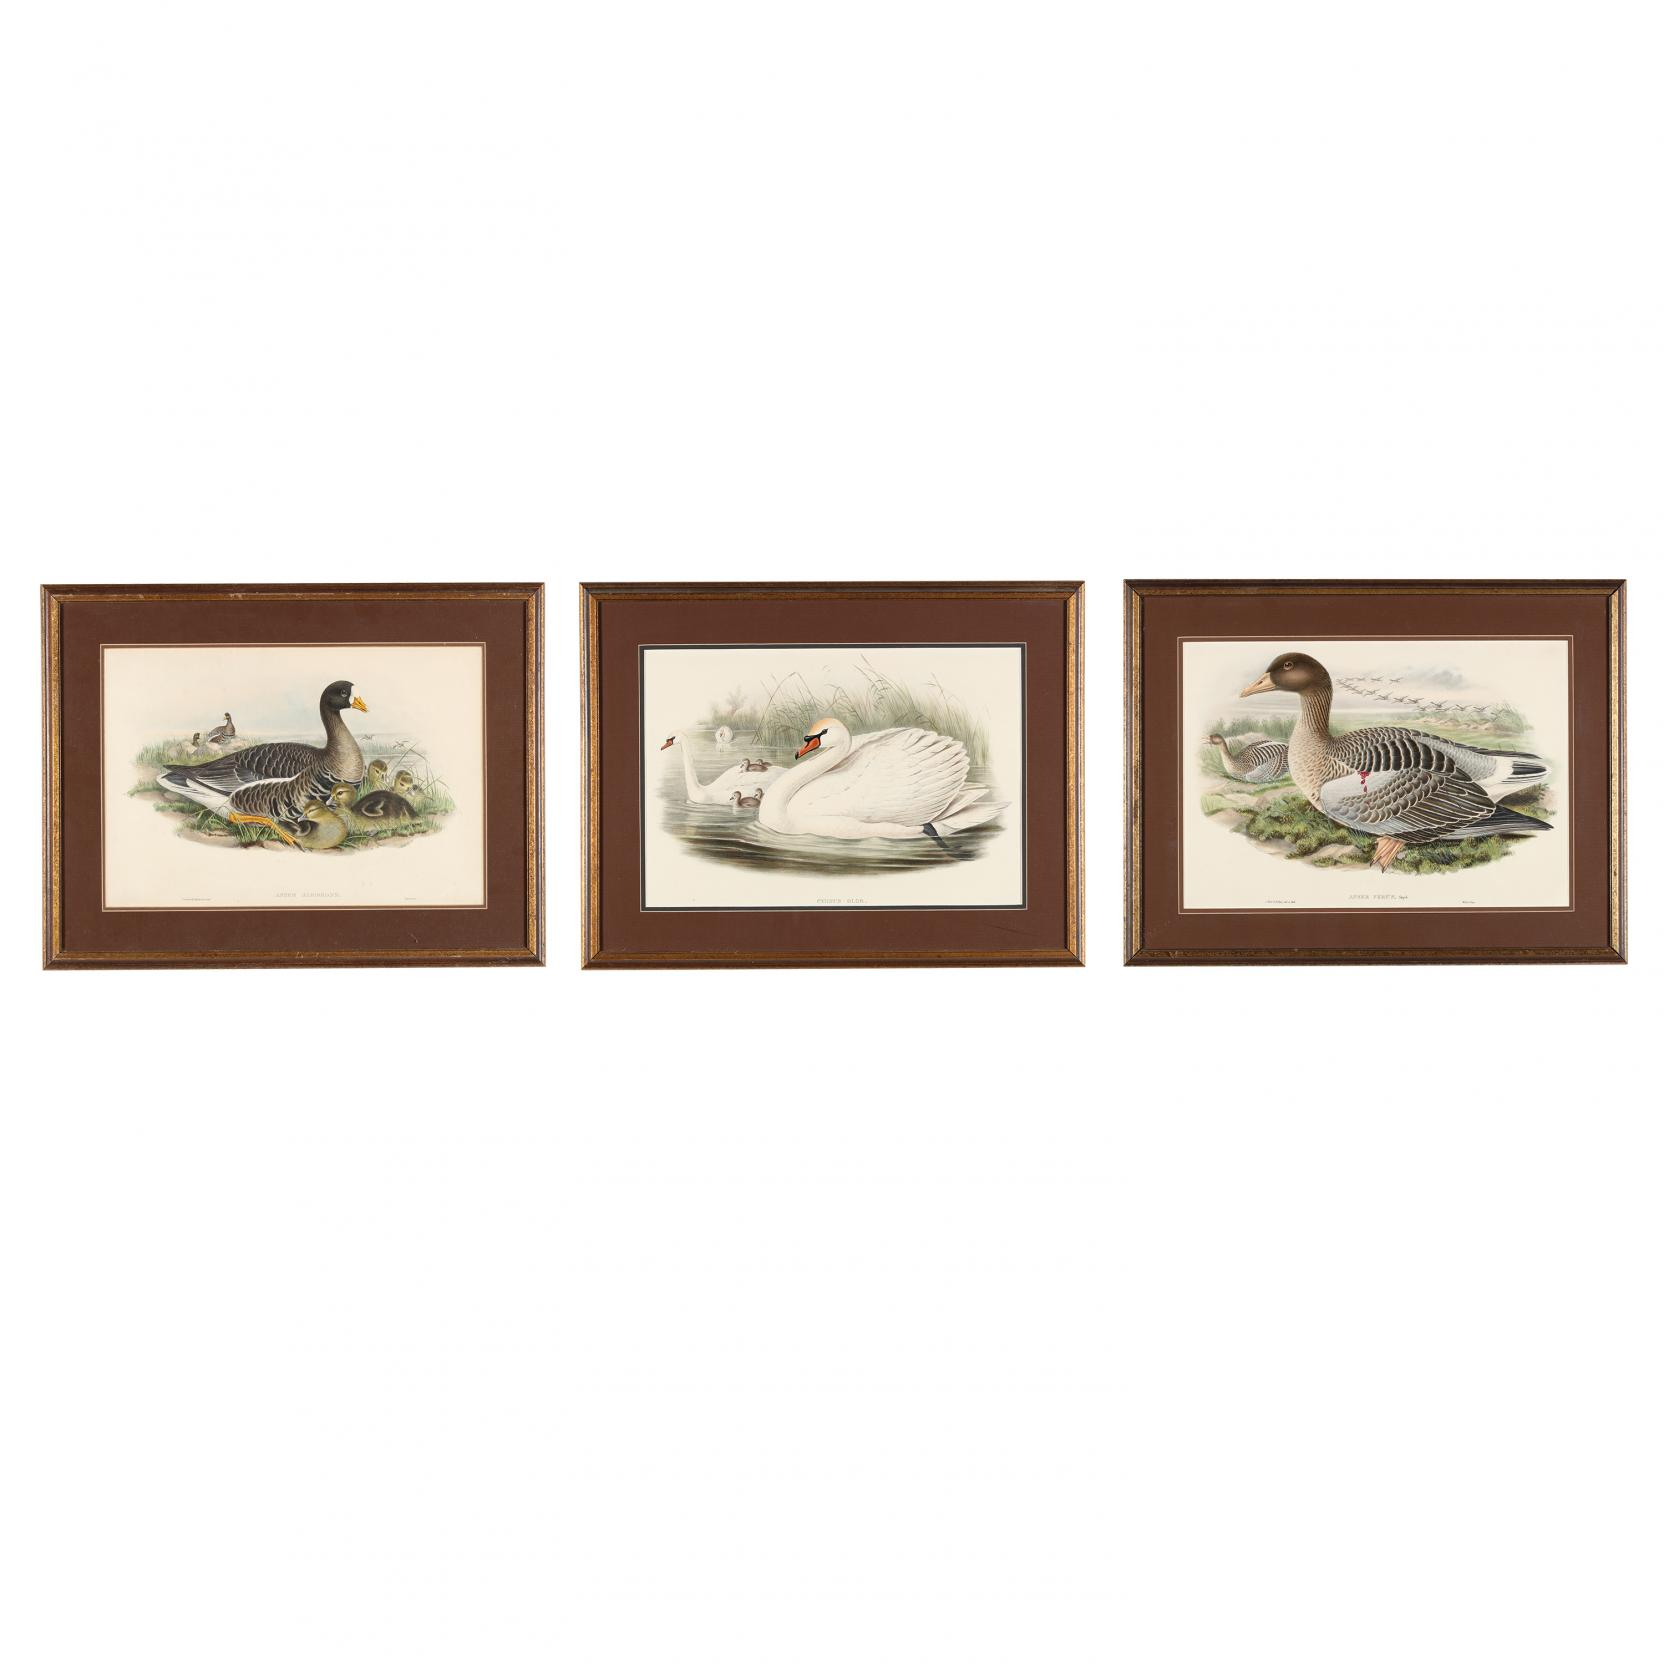 j-gould-h-c-richter-19th-century-three-hand-colored-lithographs-from-john-gould-s-i-the-birds-of-great-britain-i